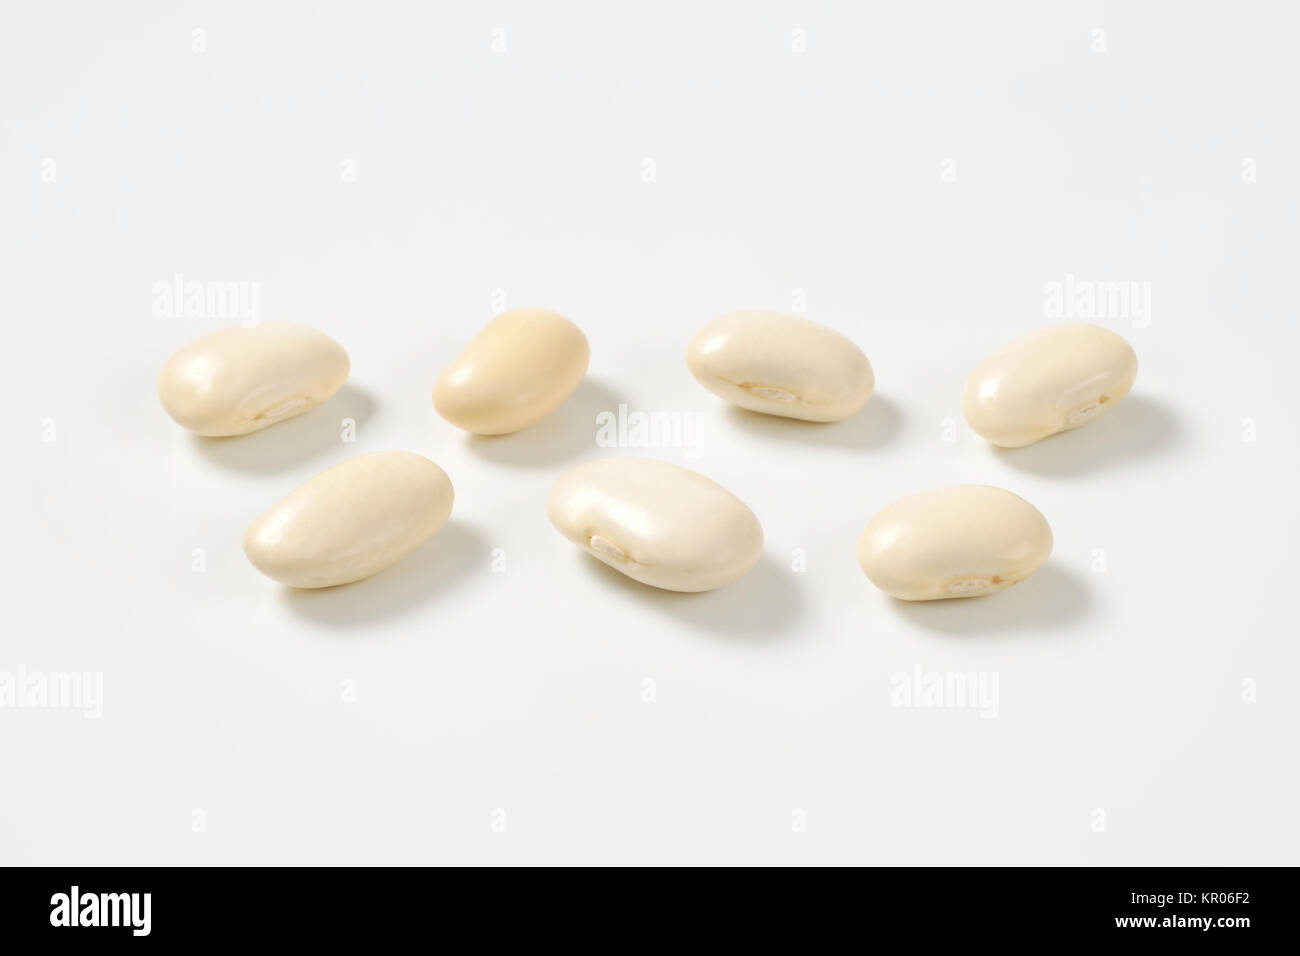 raw white beans - Stock Image